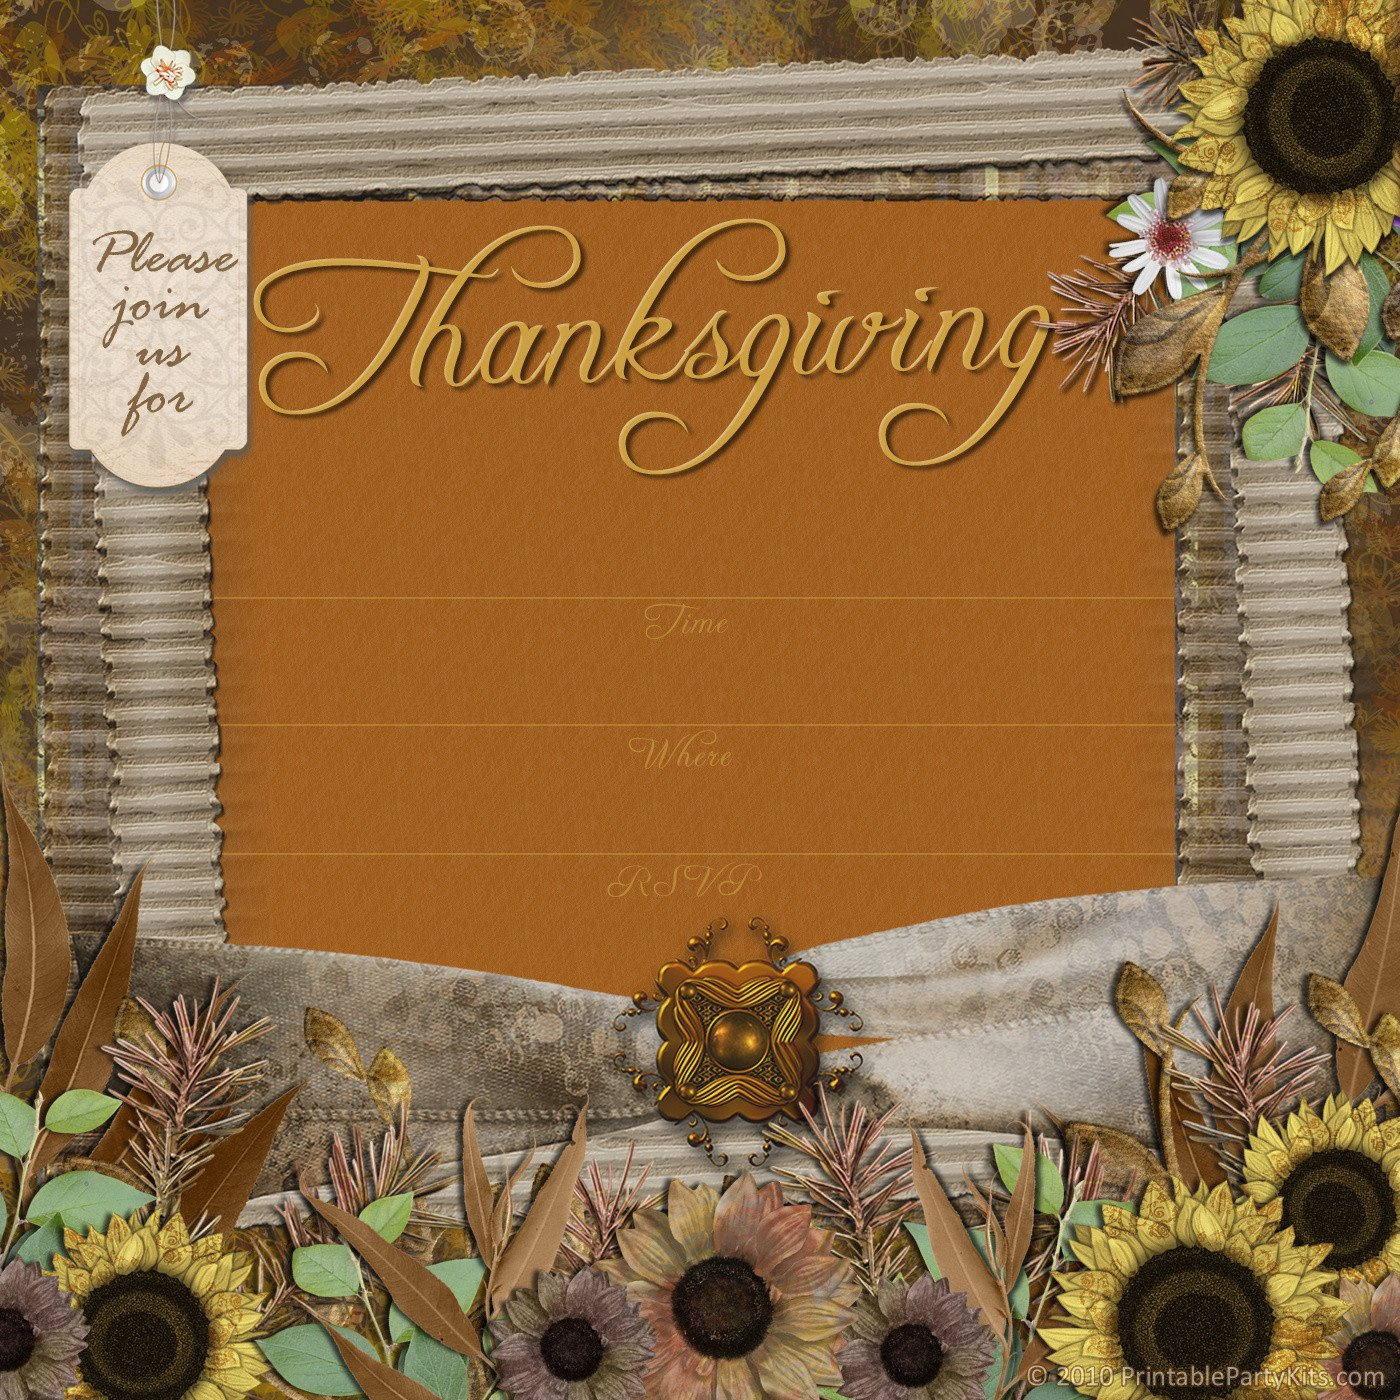 Free Thanksgiving Invitation Templates Free Printable Party Invitations Thanksgiving Dinner